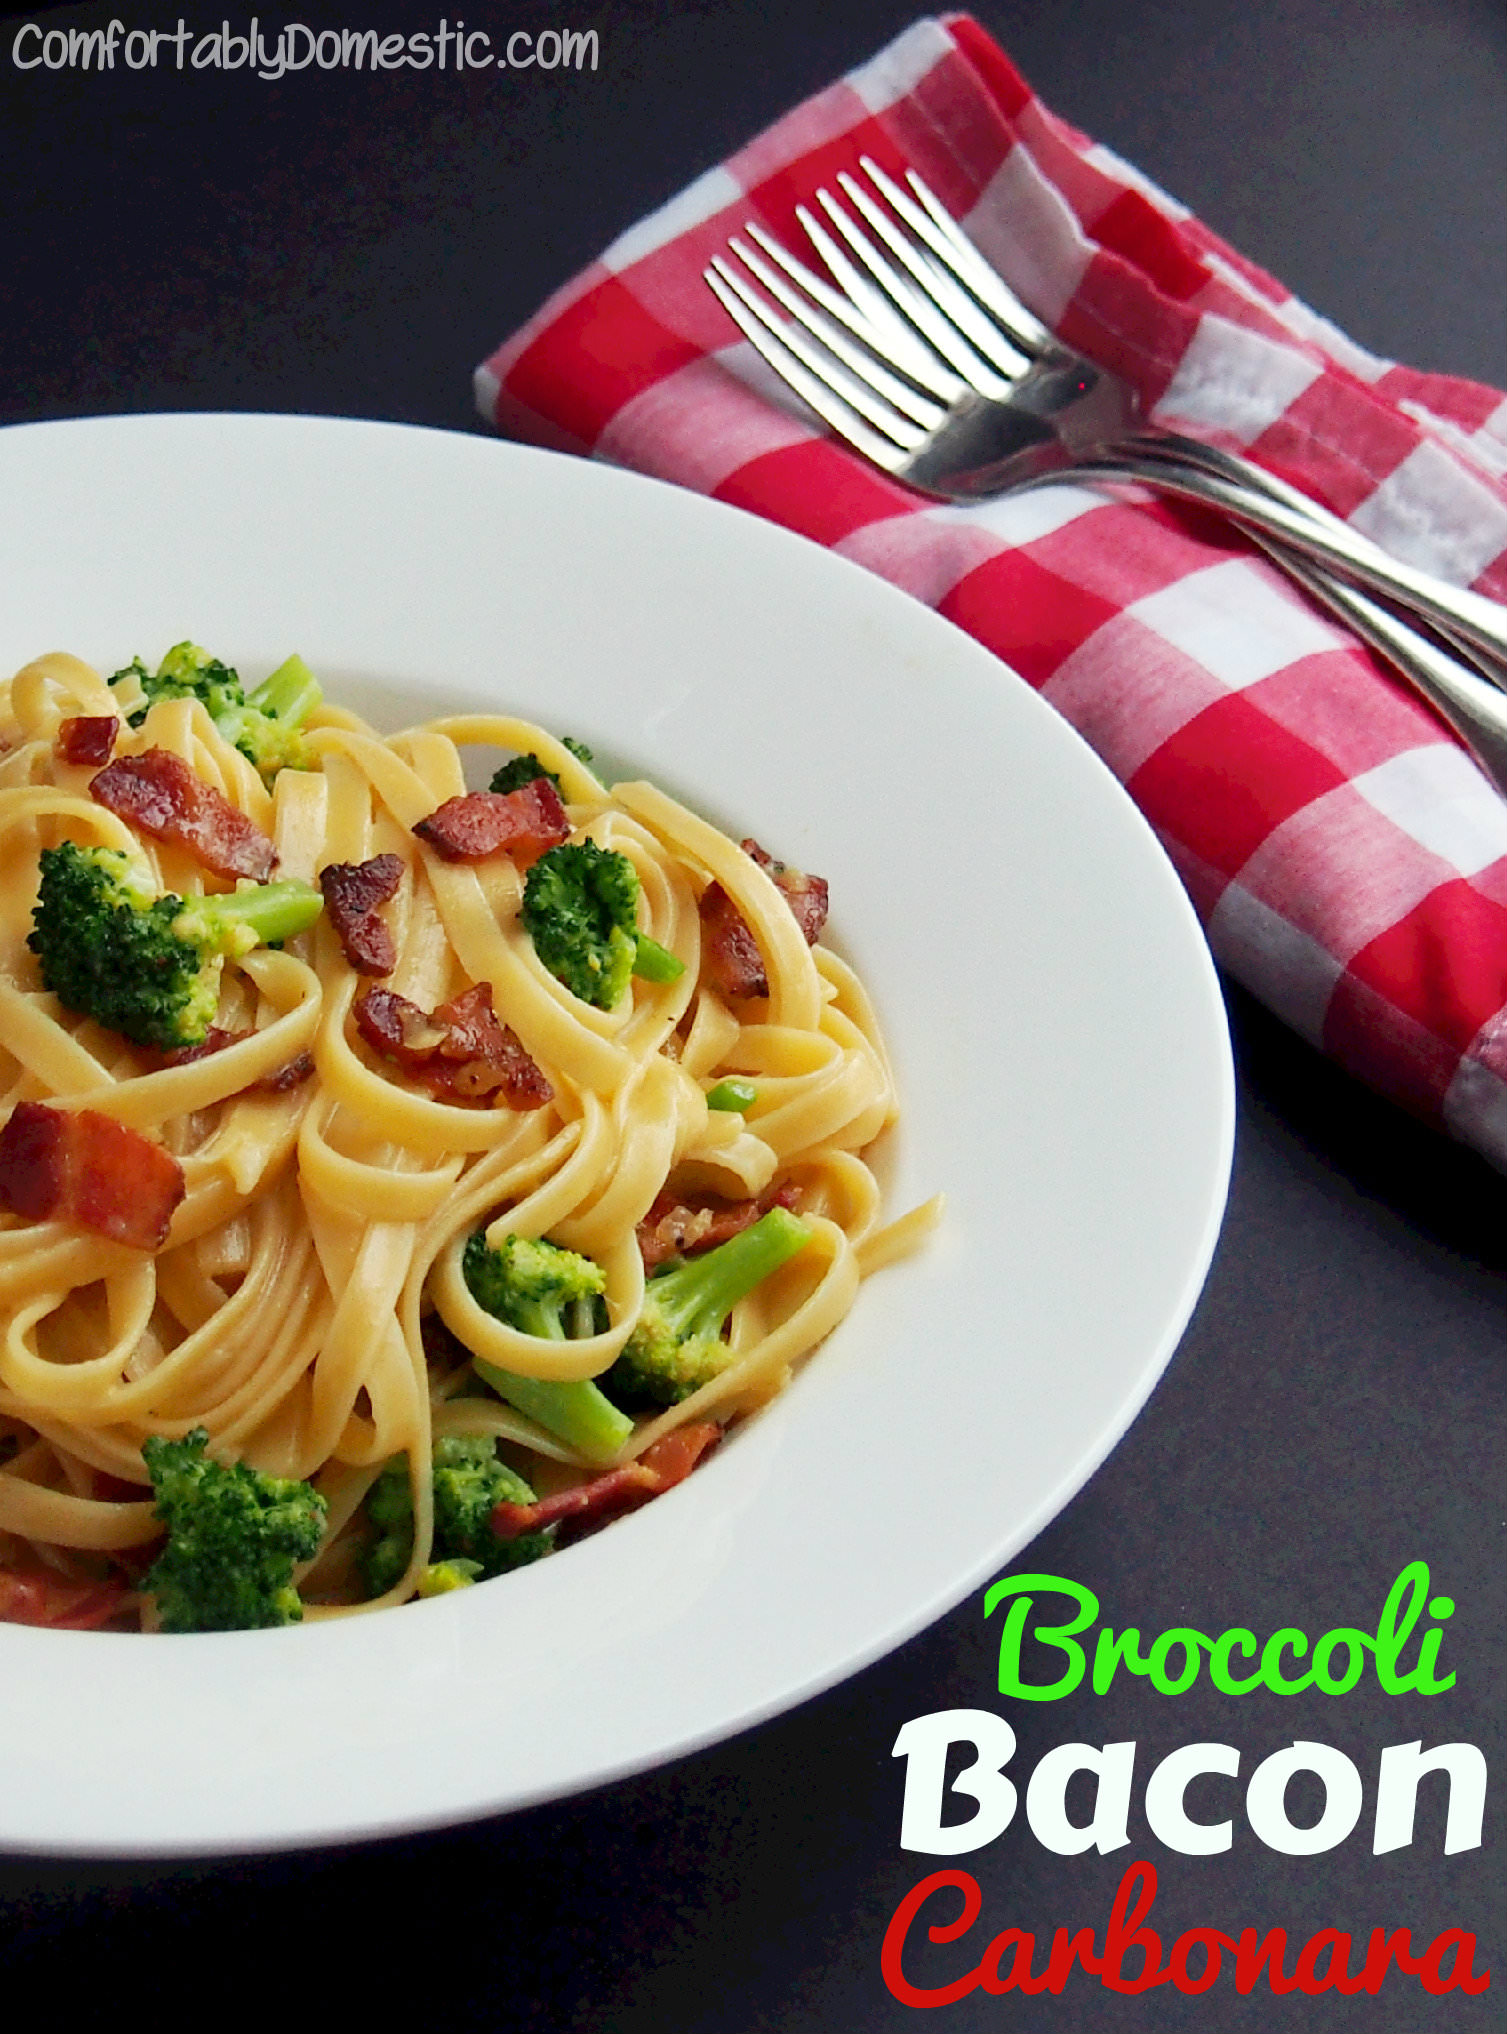 Broccoli bacon pasta carbonara is an inexpensive yet impressive meal, made with fresh broccoli, thick-cut pepper bacon, eggs, and plenty of cheese. | ComfortablyDomestic.com